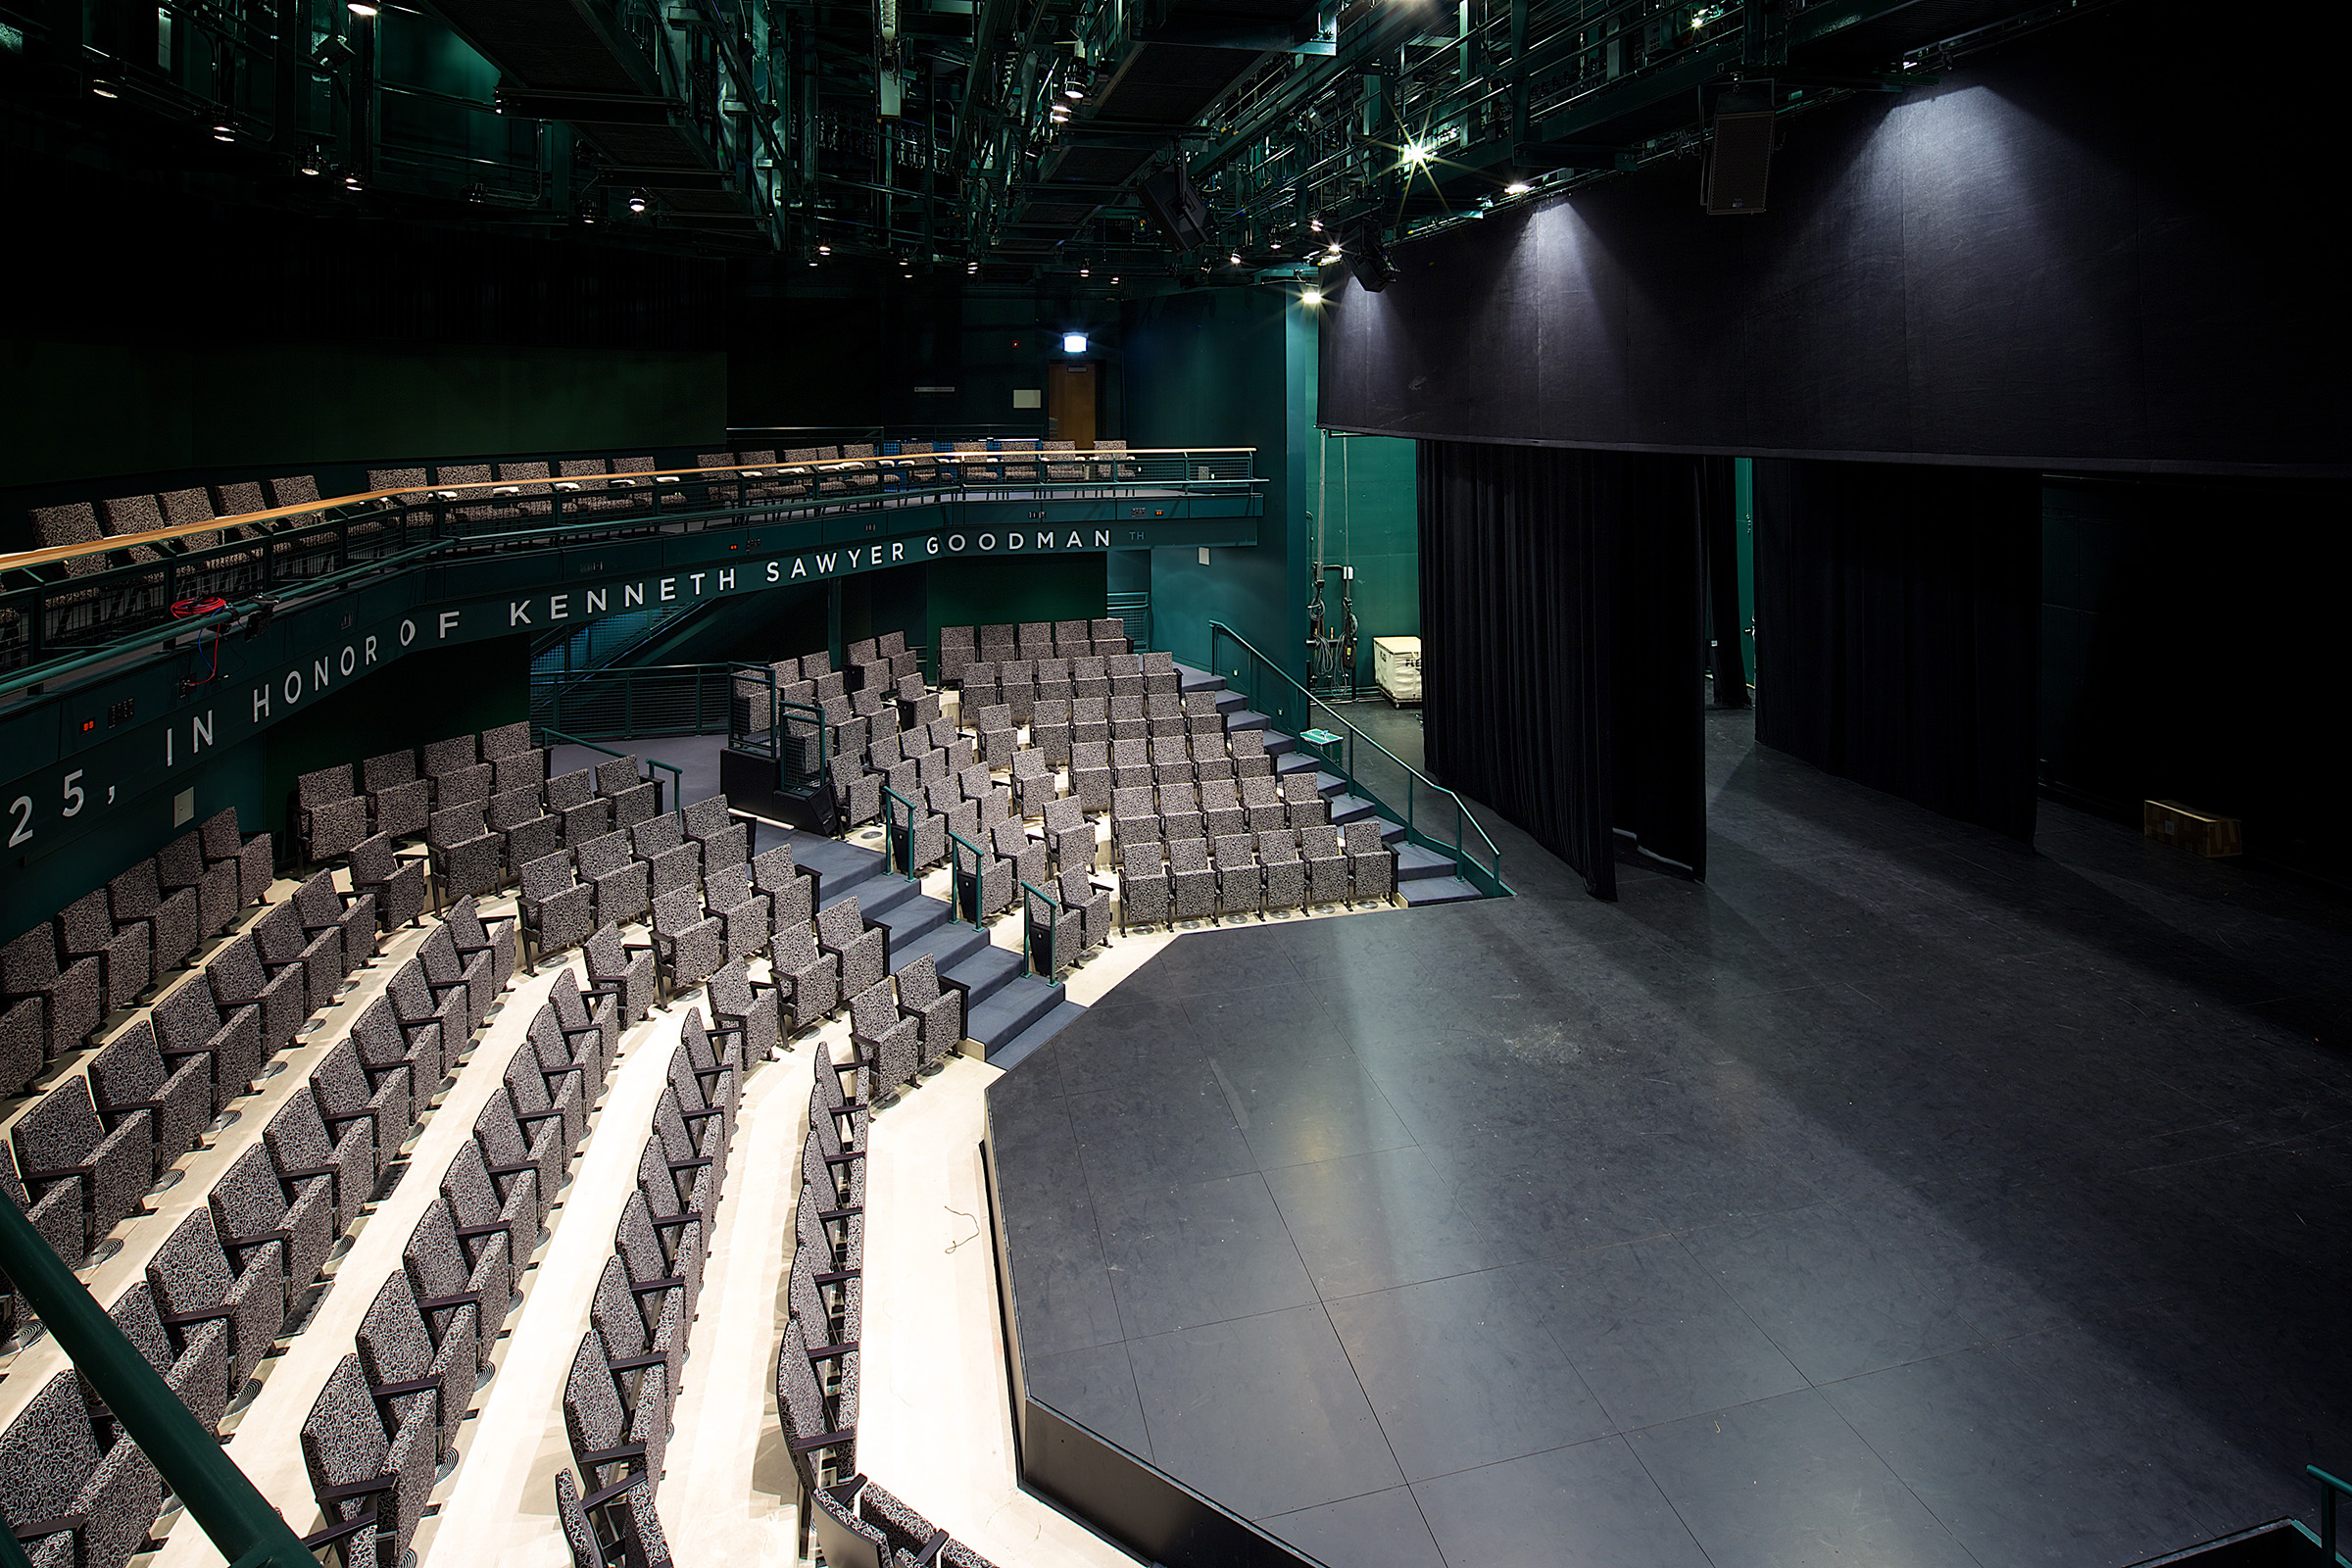 The Theatre School at DePaul University 250-seat thrust theatre